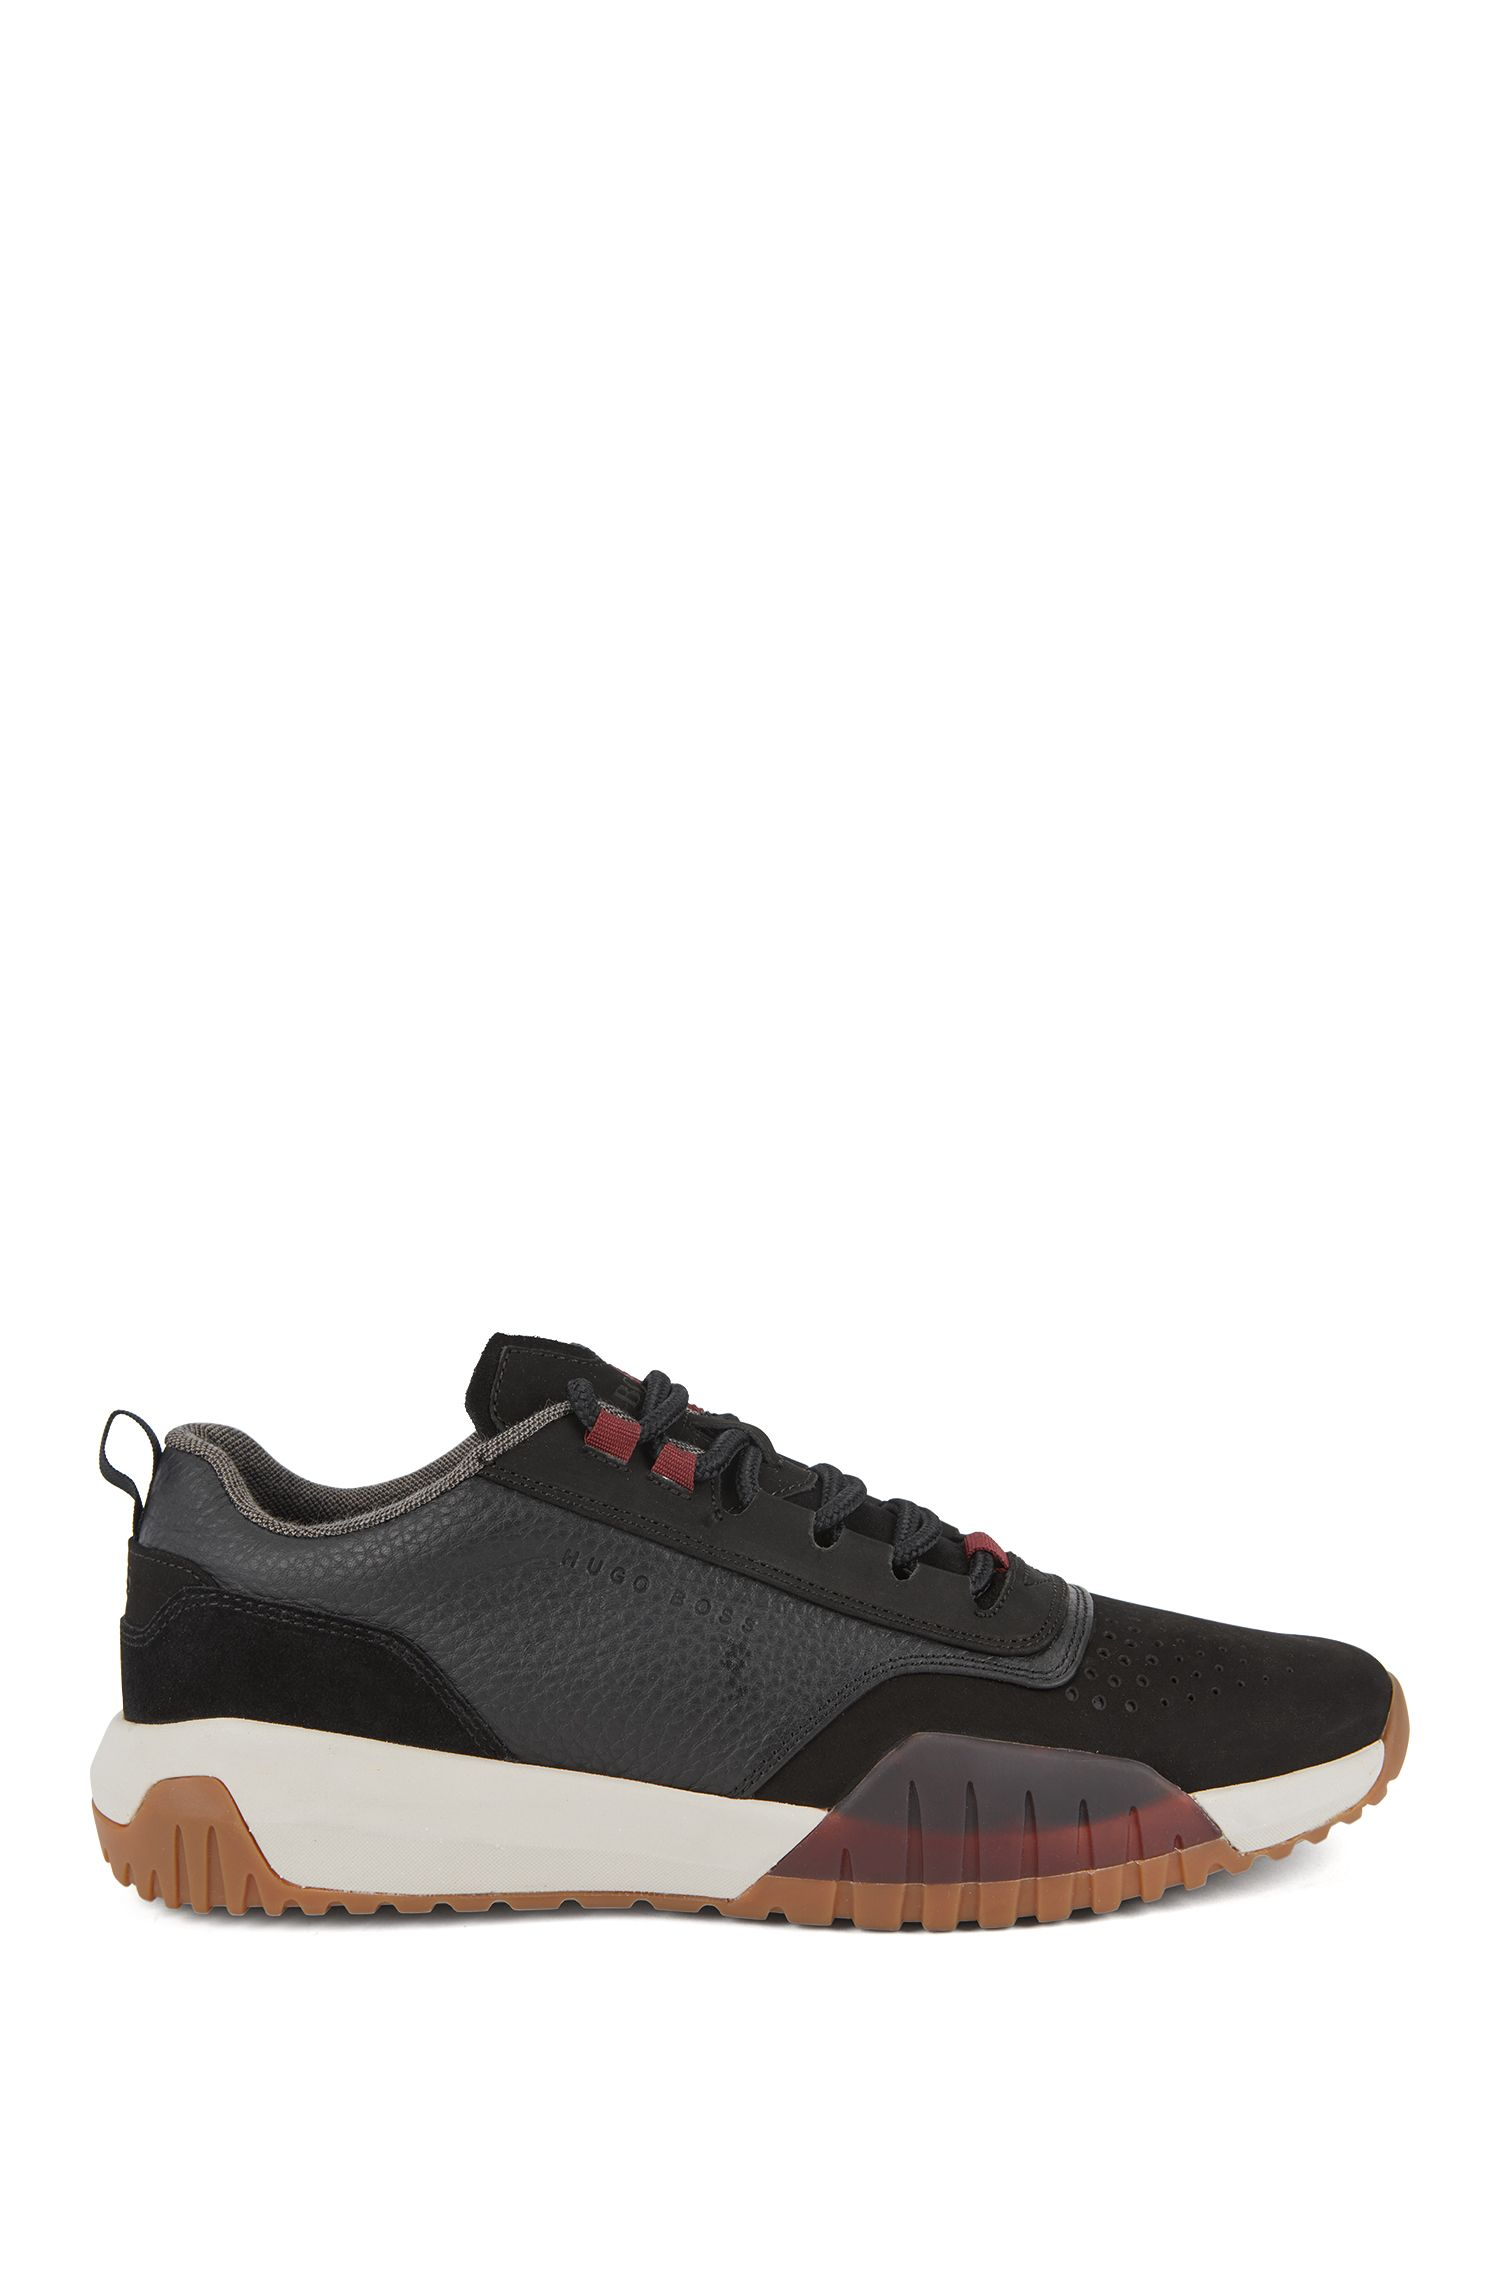 Running-inspired sneakers in nubuck, tumbled and suede leather, Black